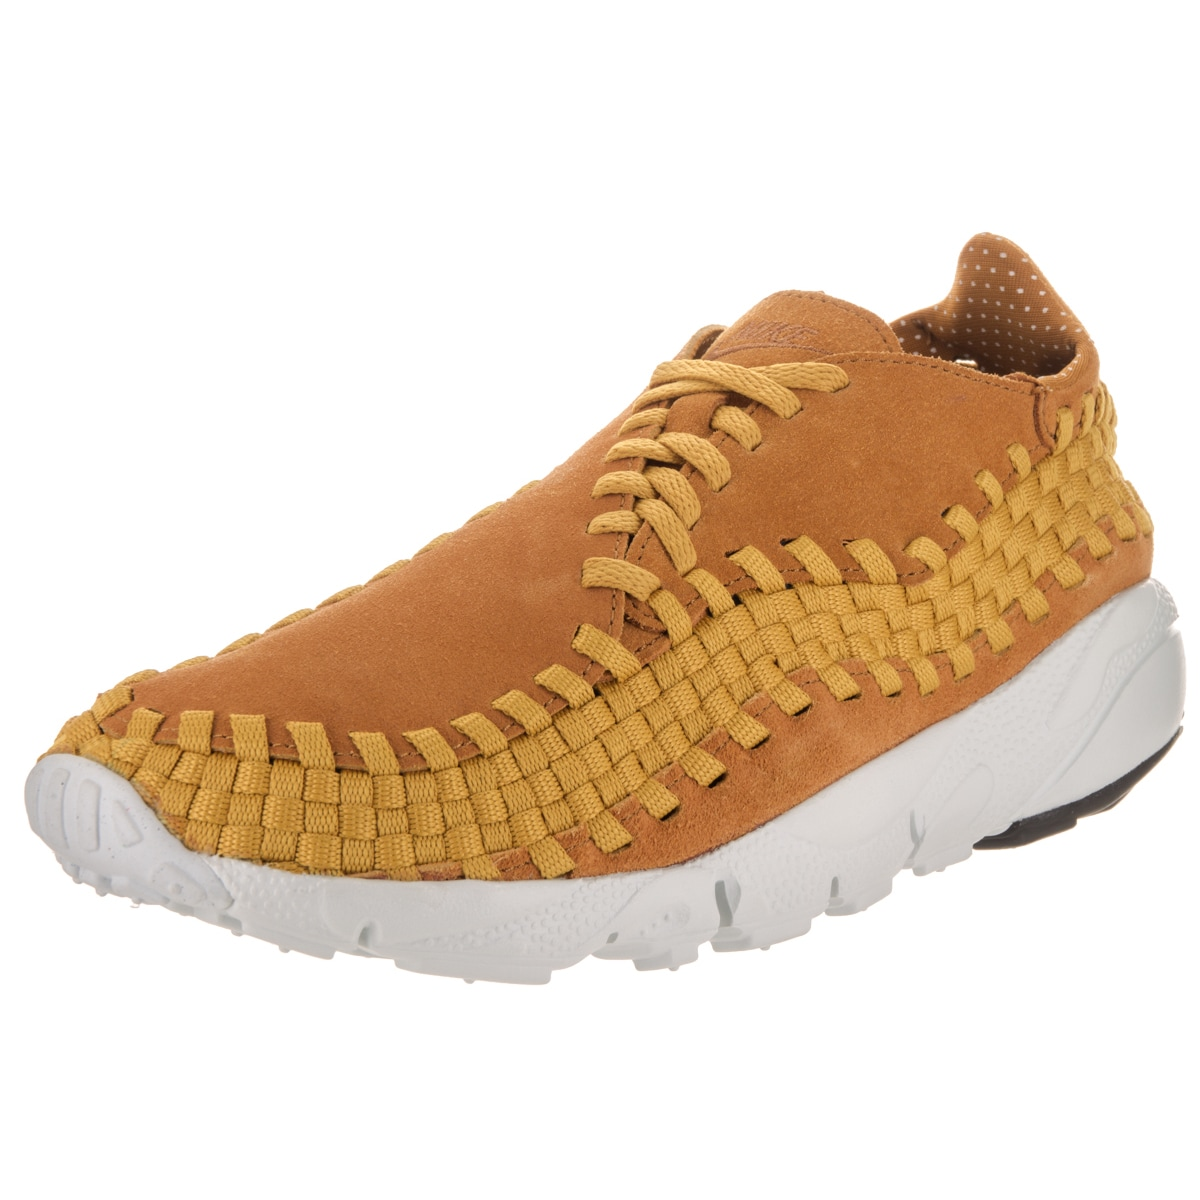 596046d428f1 Details about Nike Men s Air Footscape Woven NM Gold Suede Casual Shoes